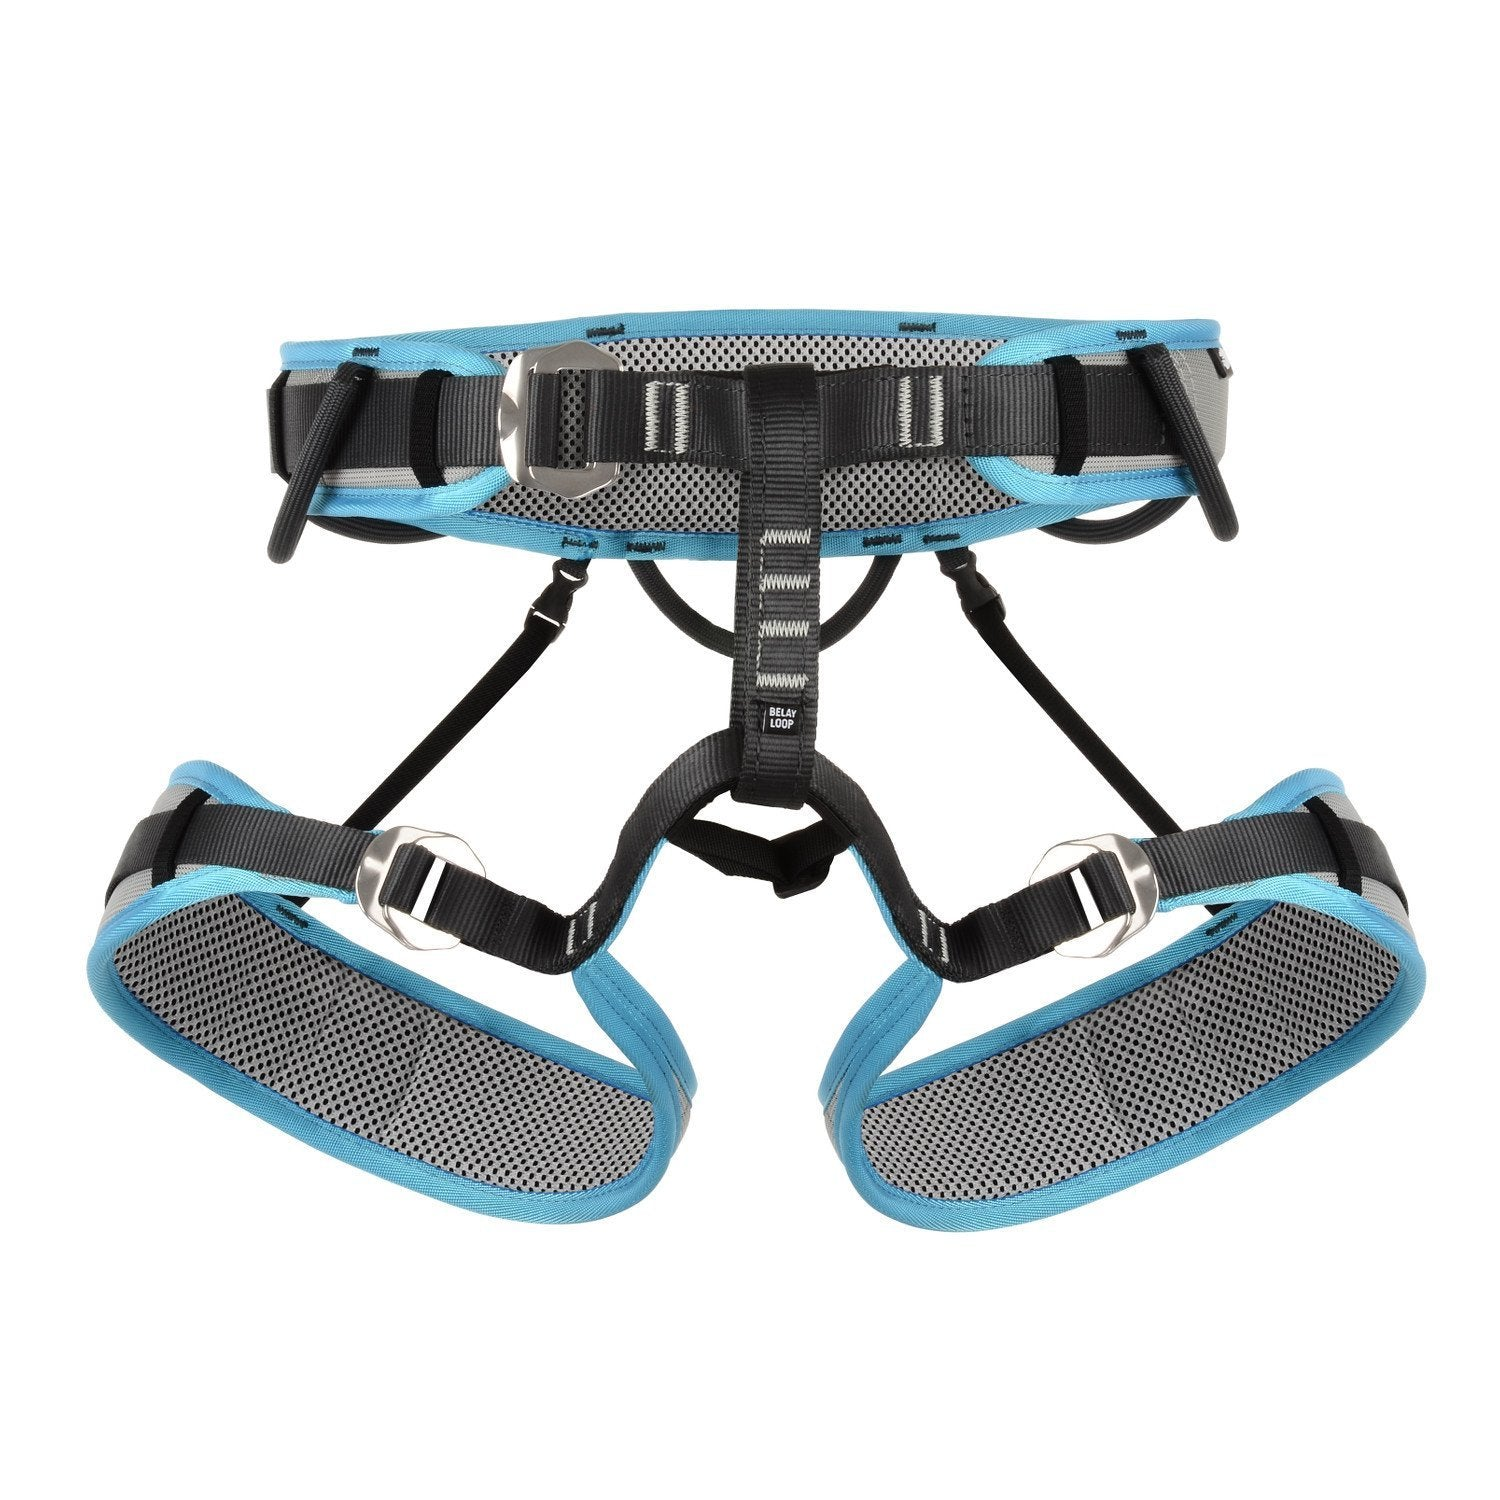 DMM Vixen Womens Harness in black, blue and grey colours